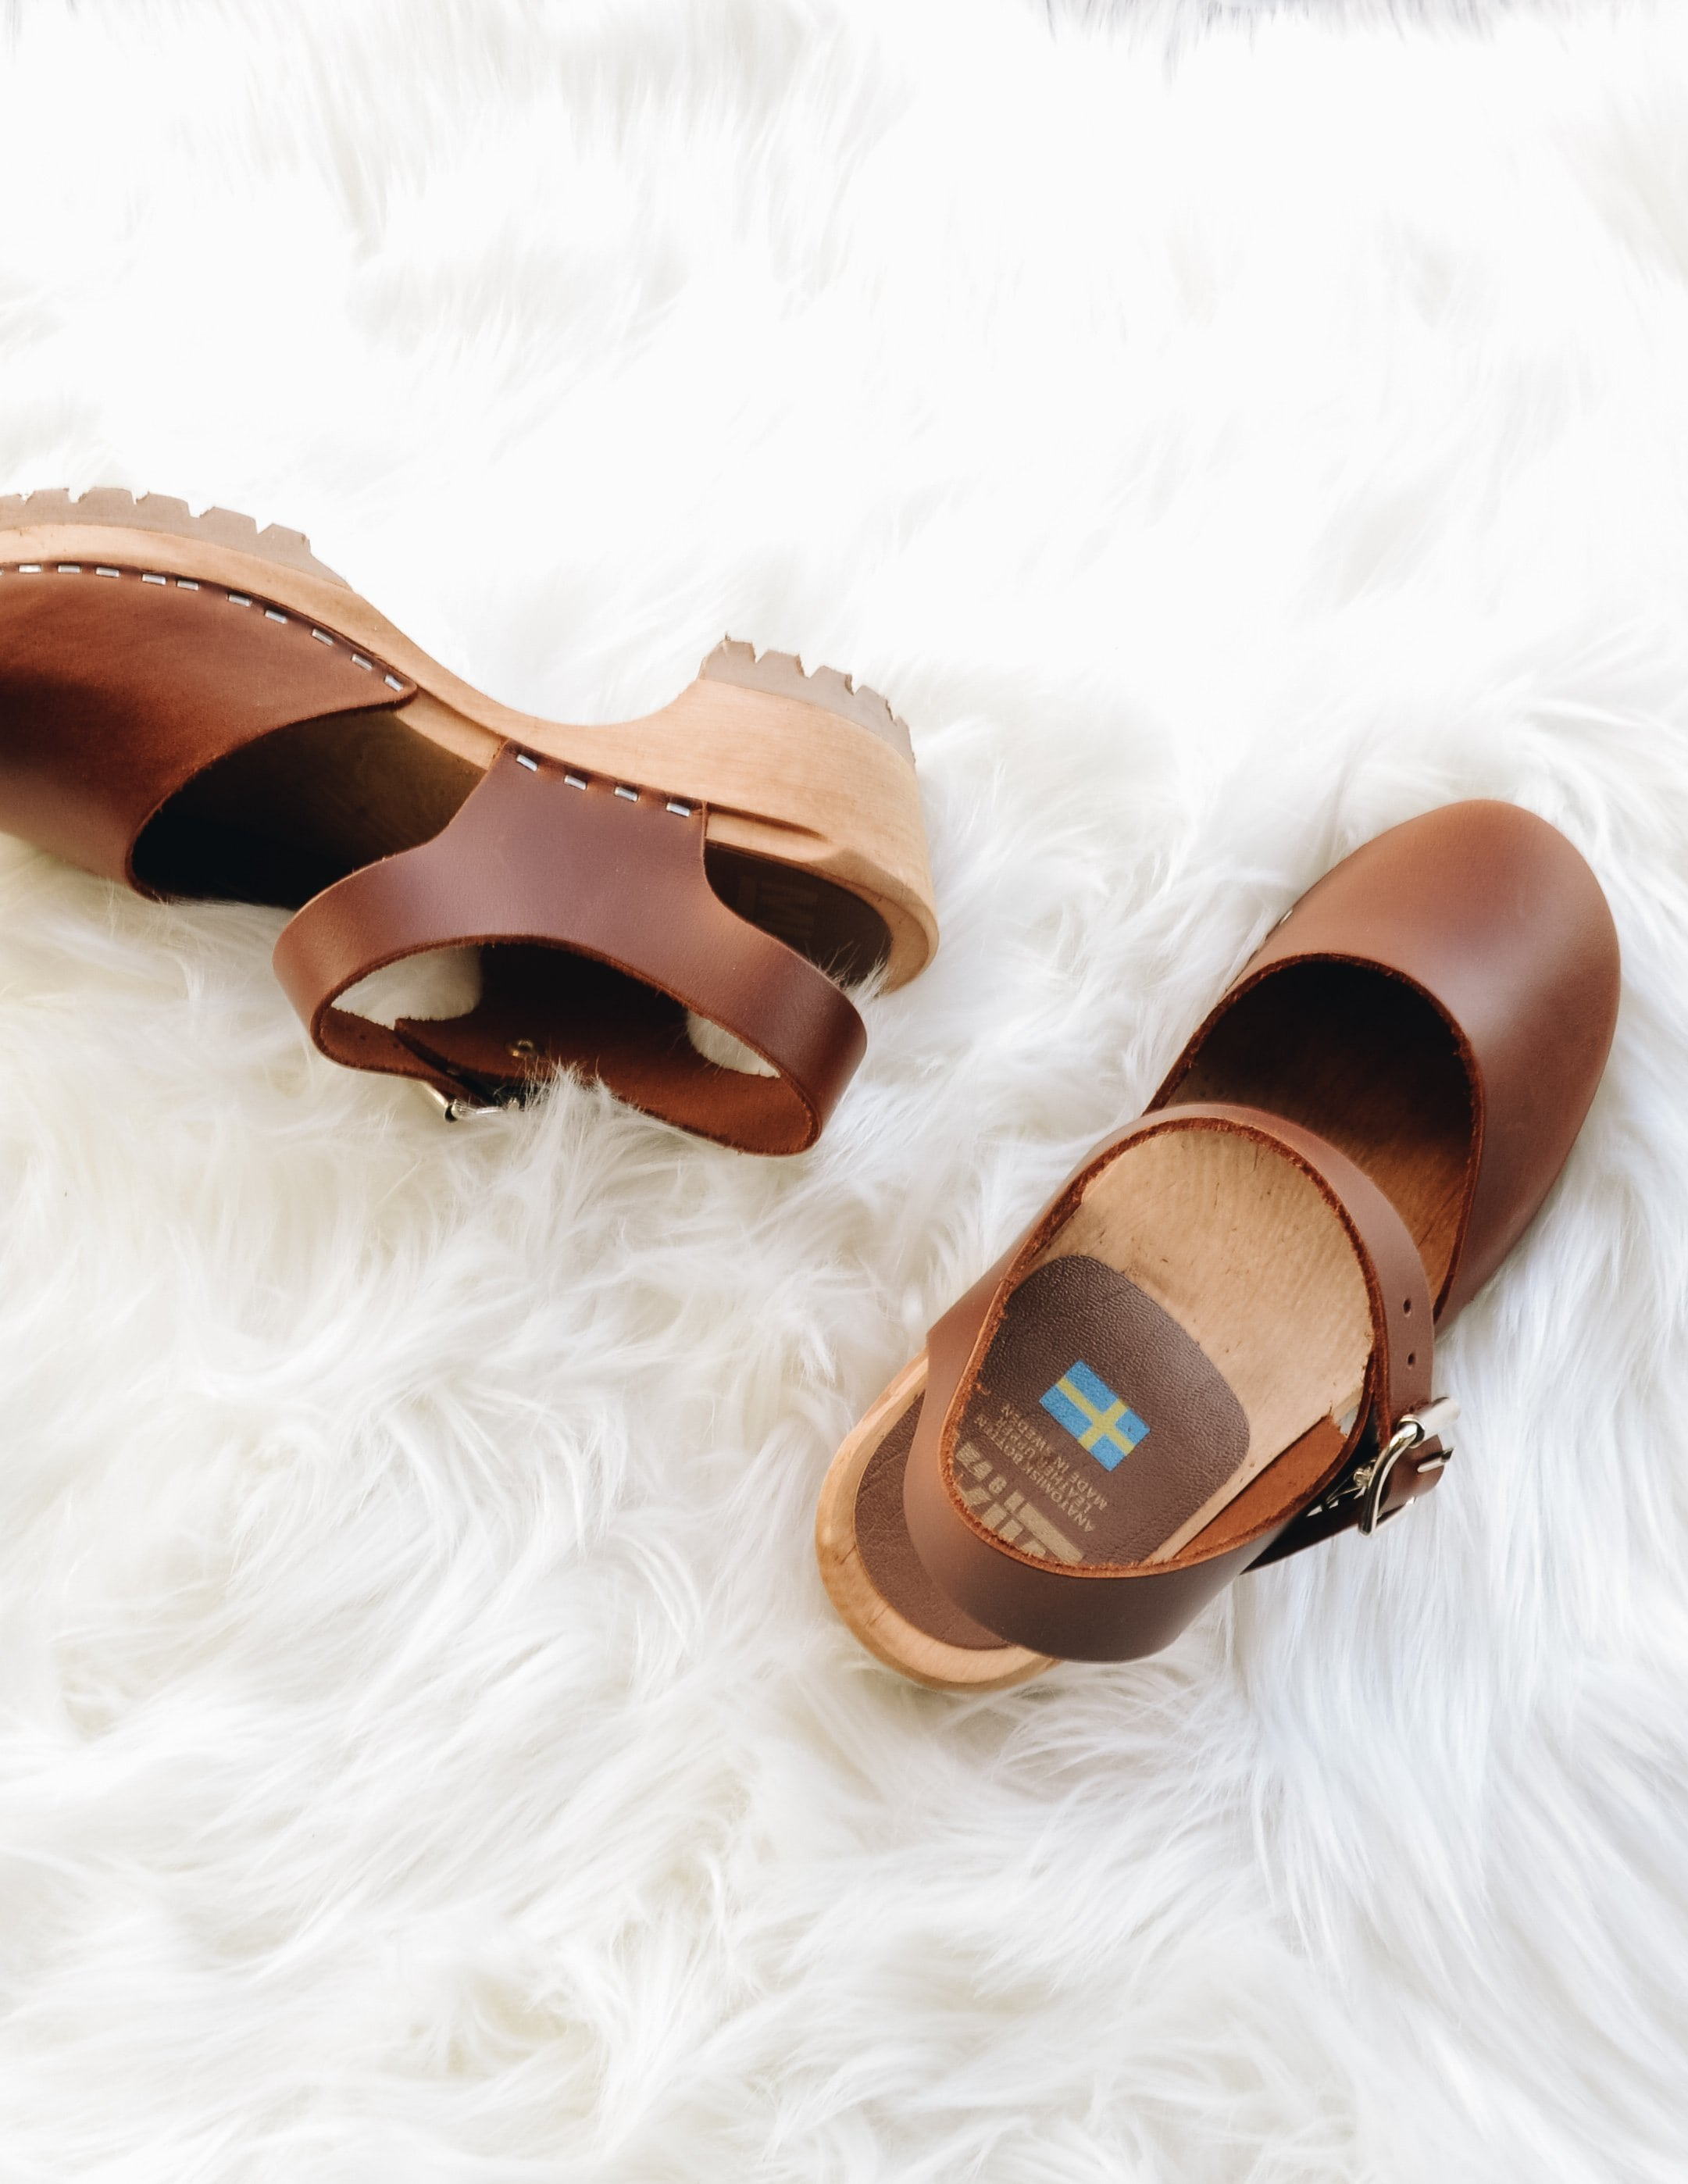 Luggage brown freja clogs laying down on white fur rug - elle bleu shoes